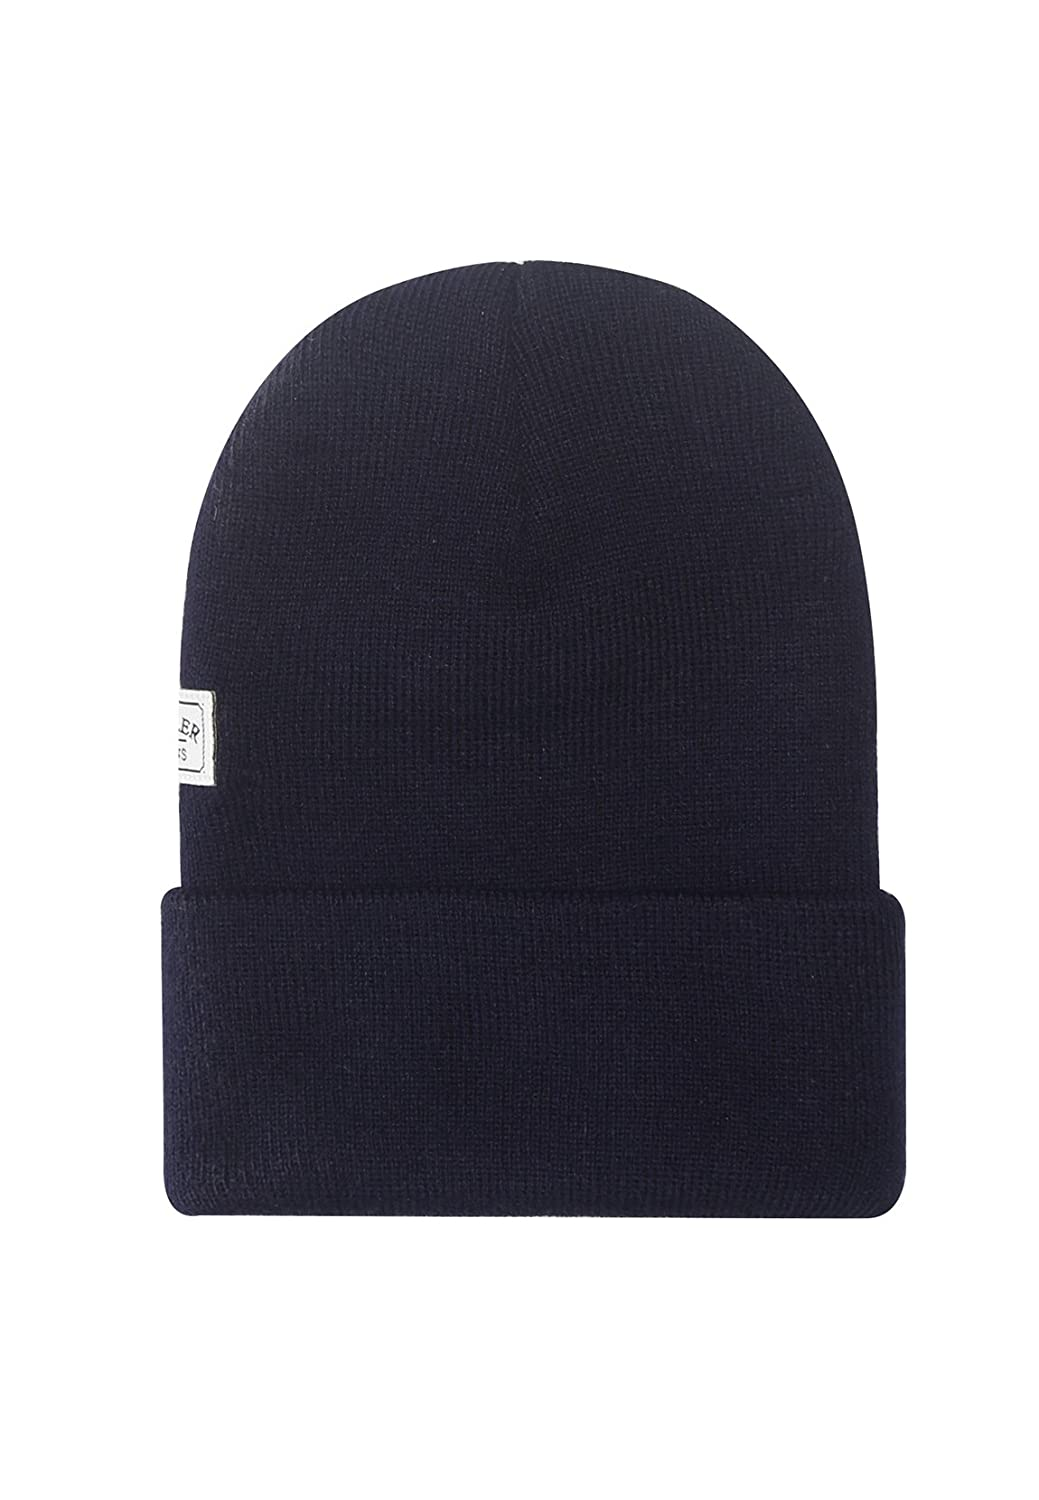 36745a4f8ca Grime Old School Navy Beanie - Cayler   Sons  Amazon.co.uk  Clothing